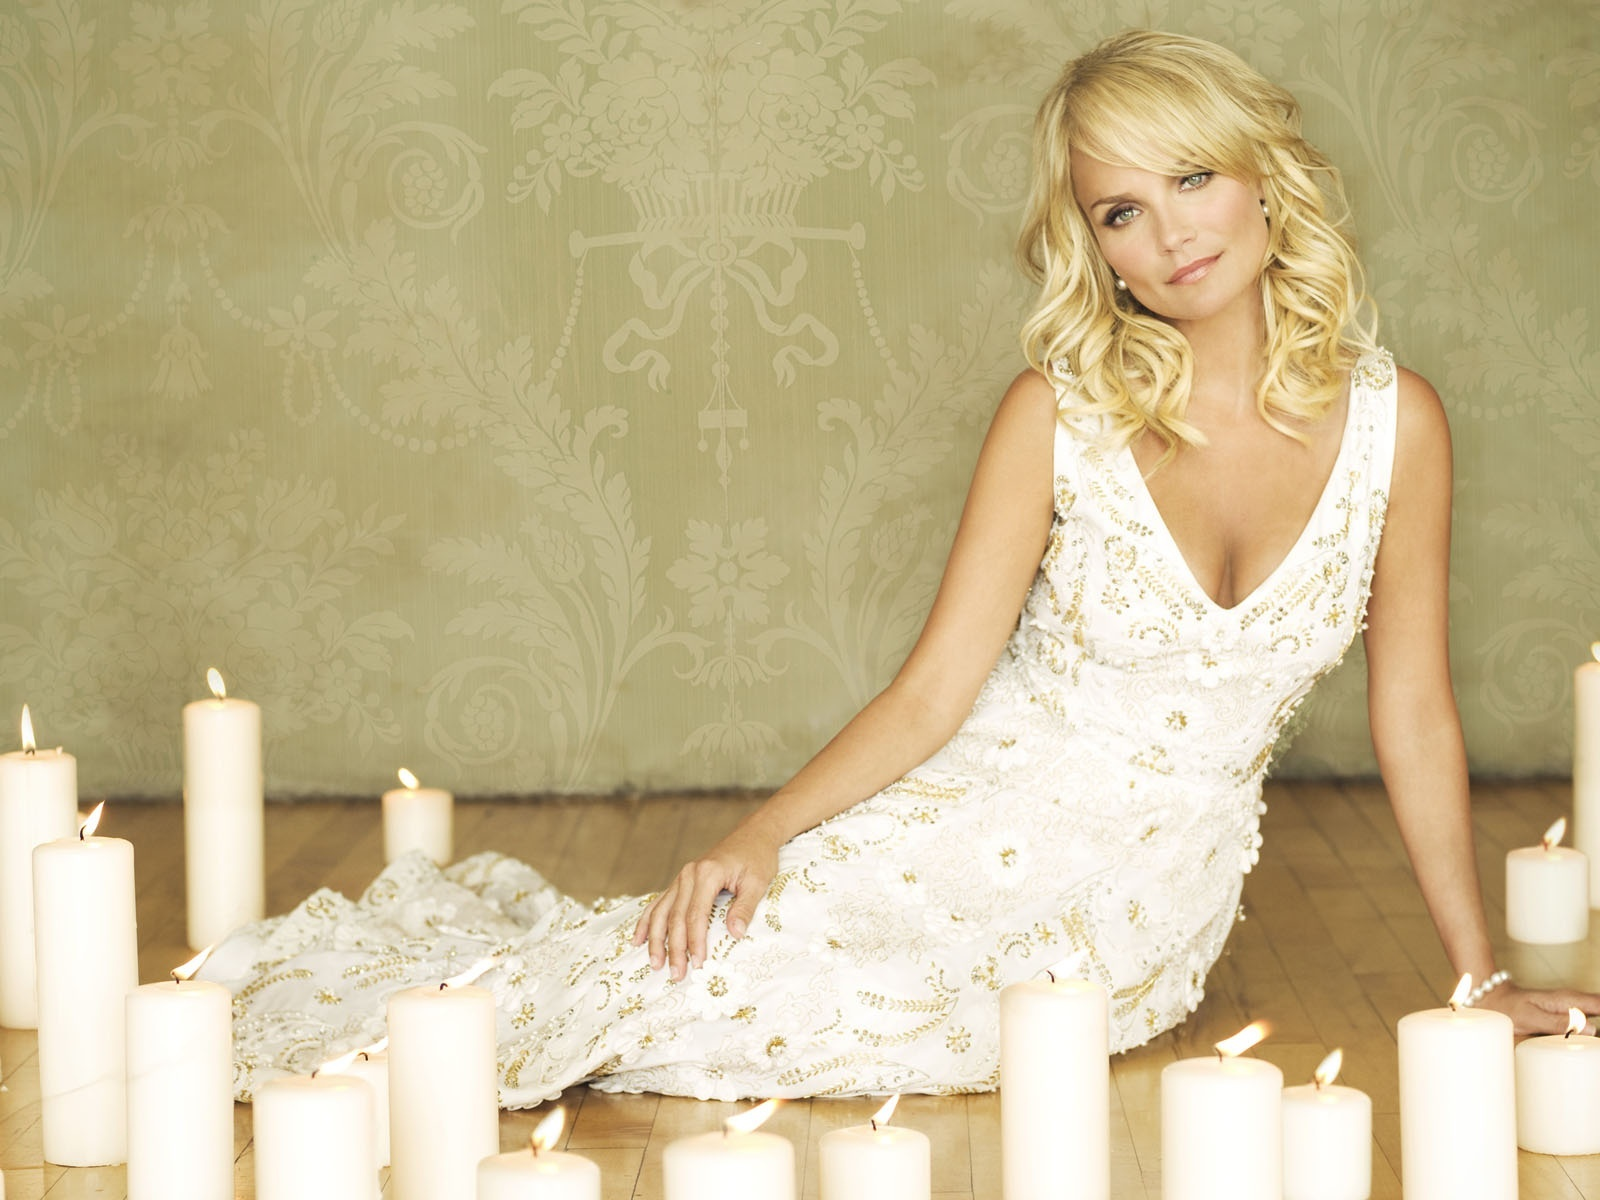 click to free download the wallpaper--Beautiful Photos of TV Show, Kristin Chenoweth in White Dress, Canbles All Over Her 1600X1200 free wallpaper download